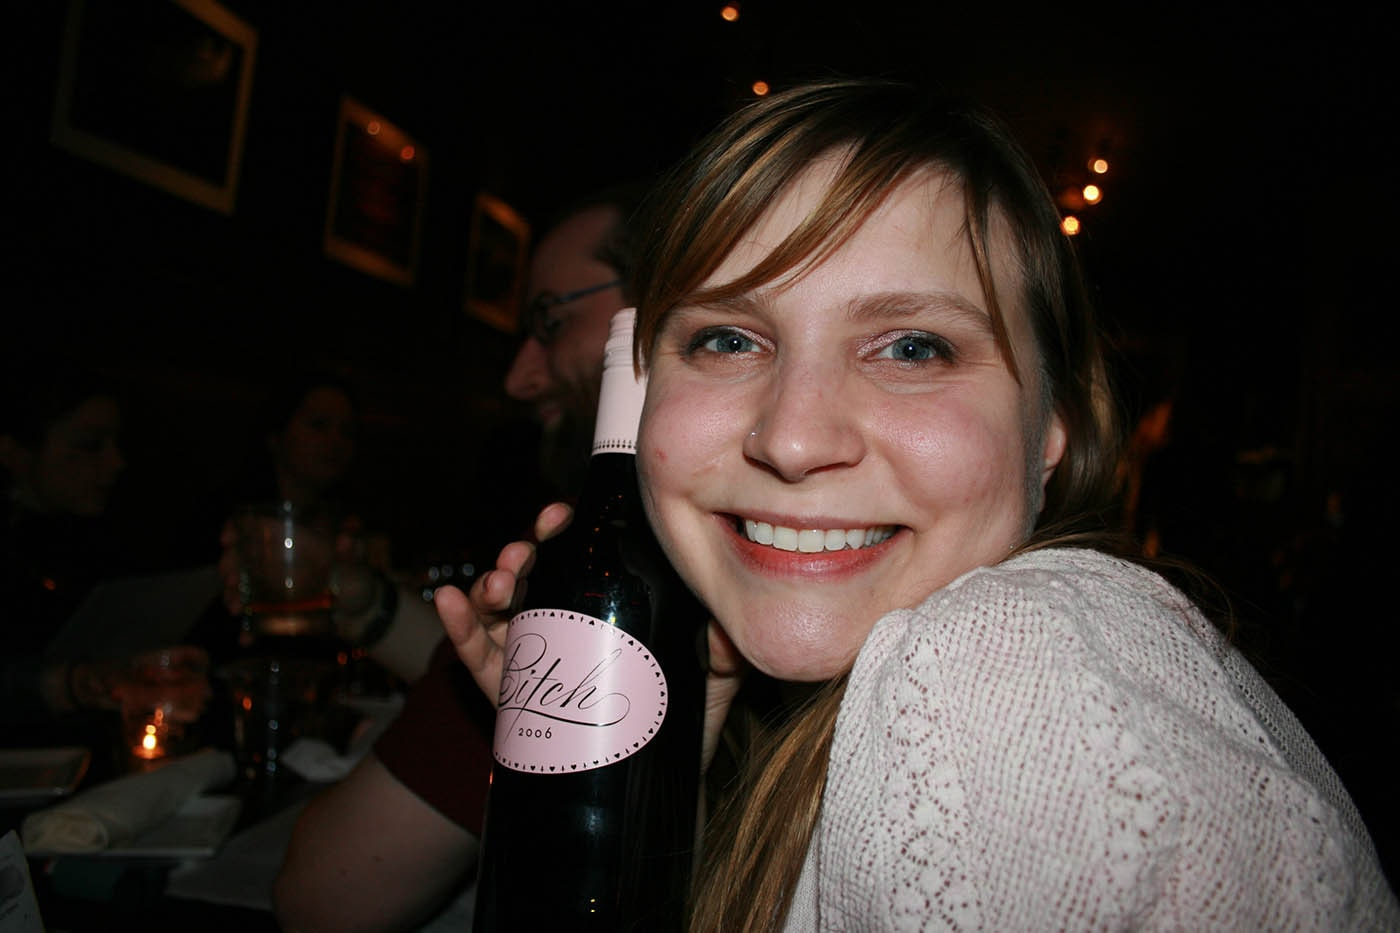 Me with a bottle of Bitch Wine on my 27th birthday.